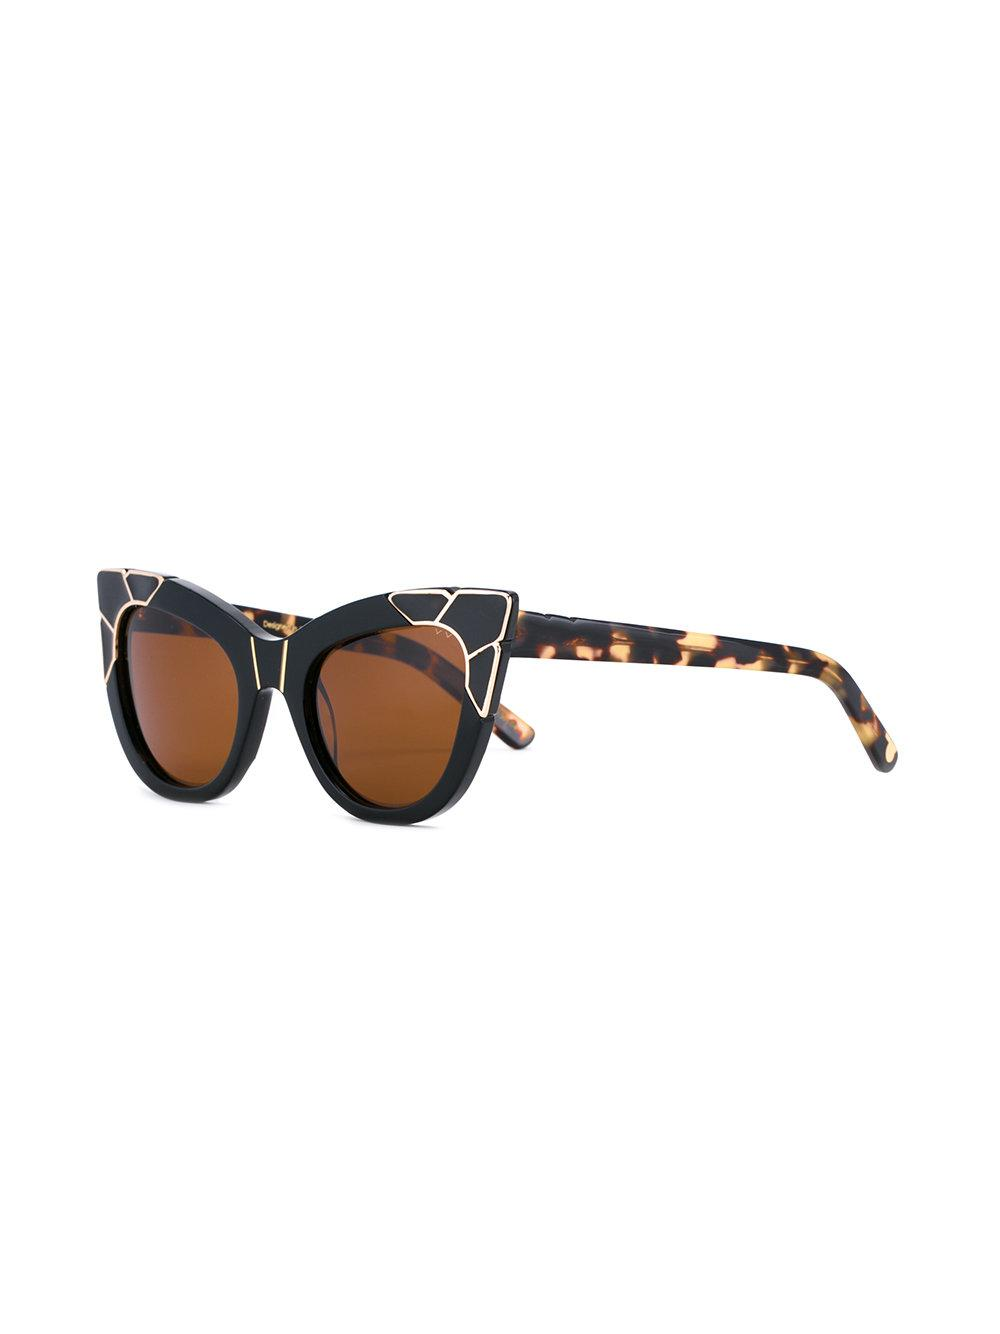 2ee3d9c8e4 Pared Eyewear - Black Puss   Boots Sunglasses - Lyst. View fullscreen